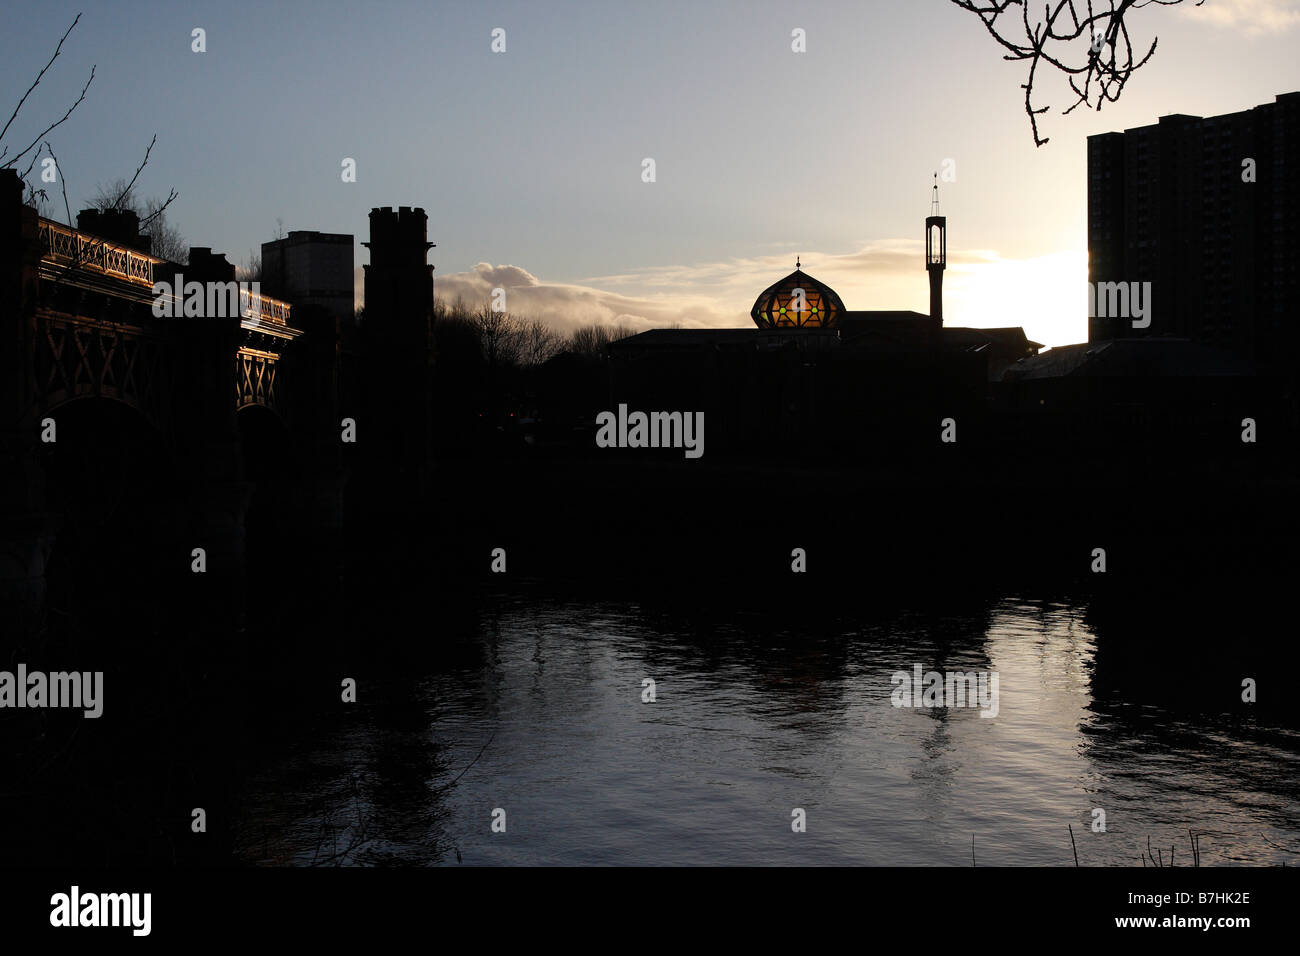 The dome of the mosque in central Glasgow by the River Clyde - Stock Image